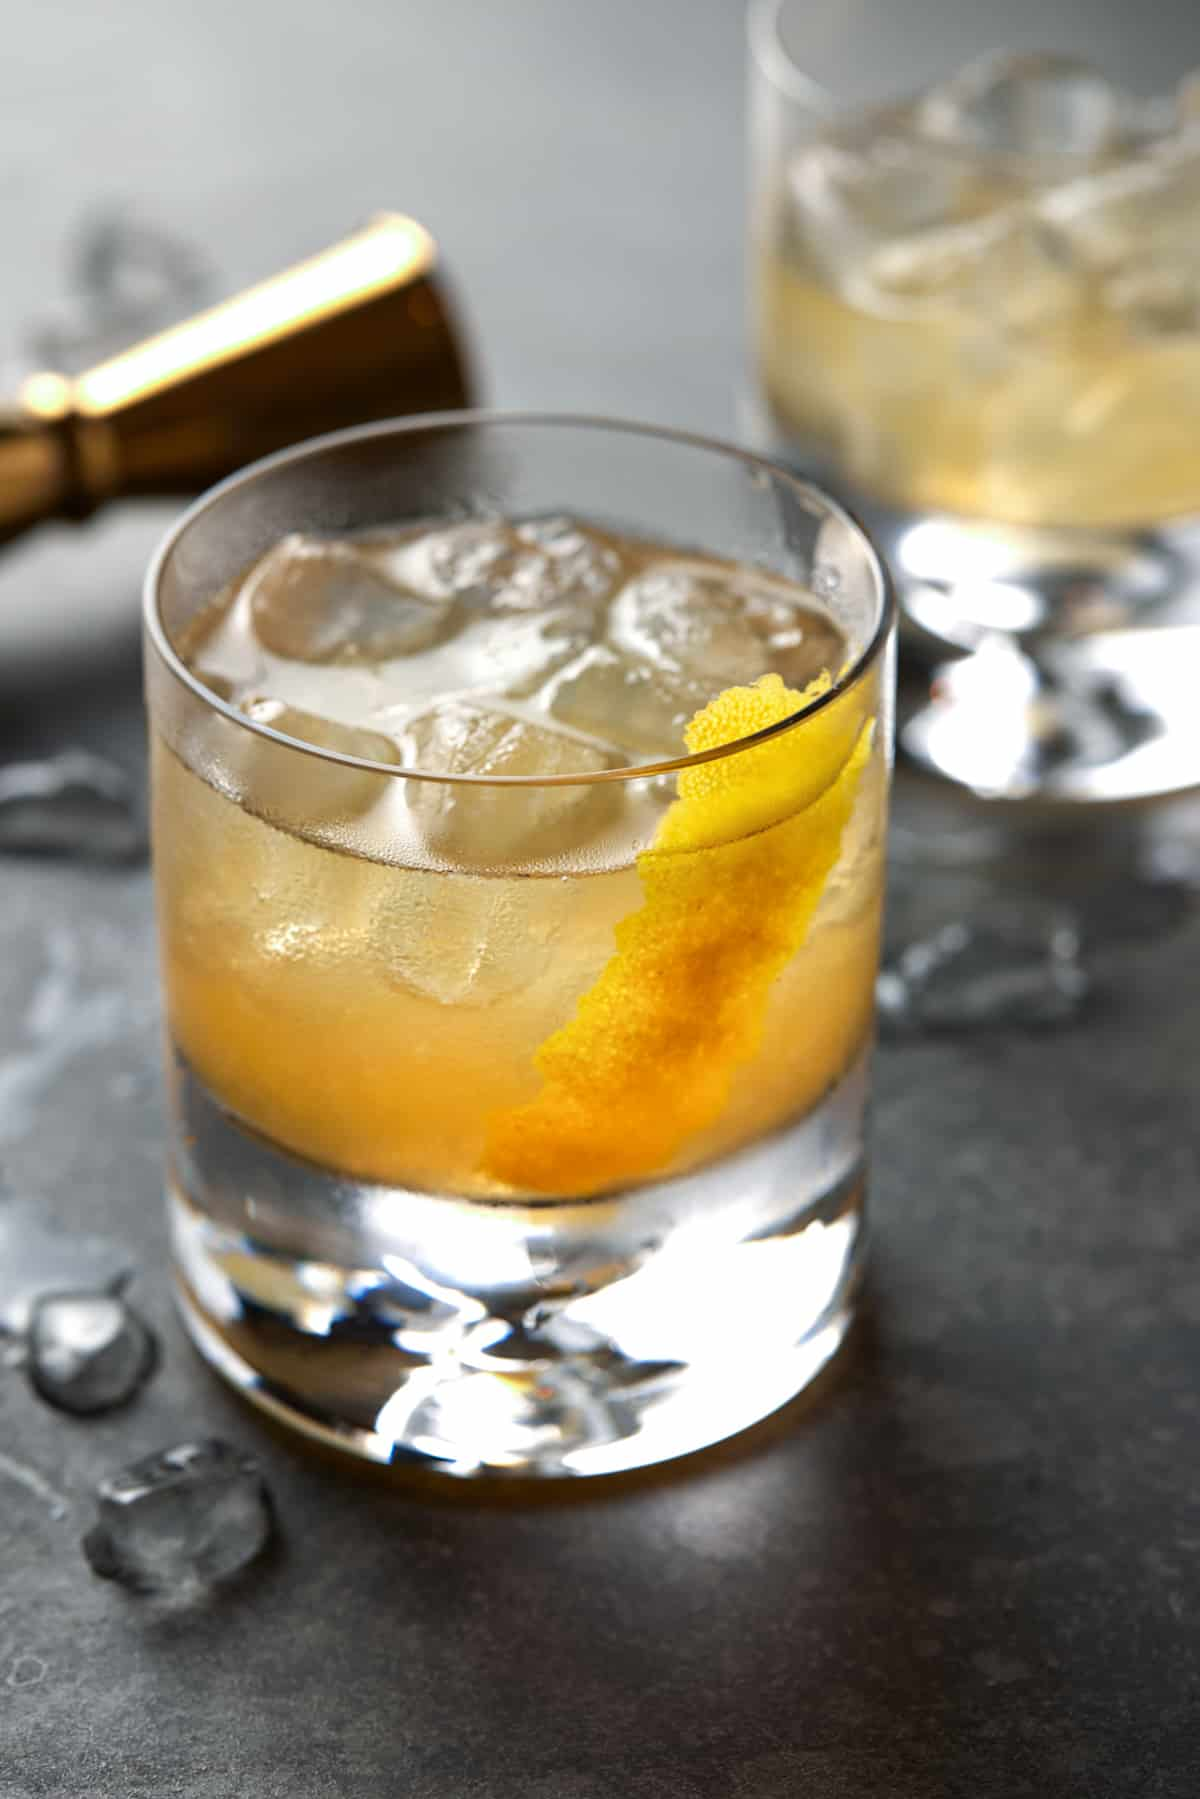 Lowball glass of golden cocktail on a dark gray board.